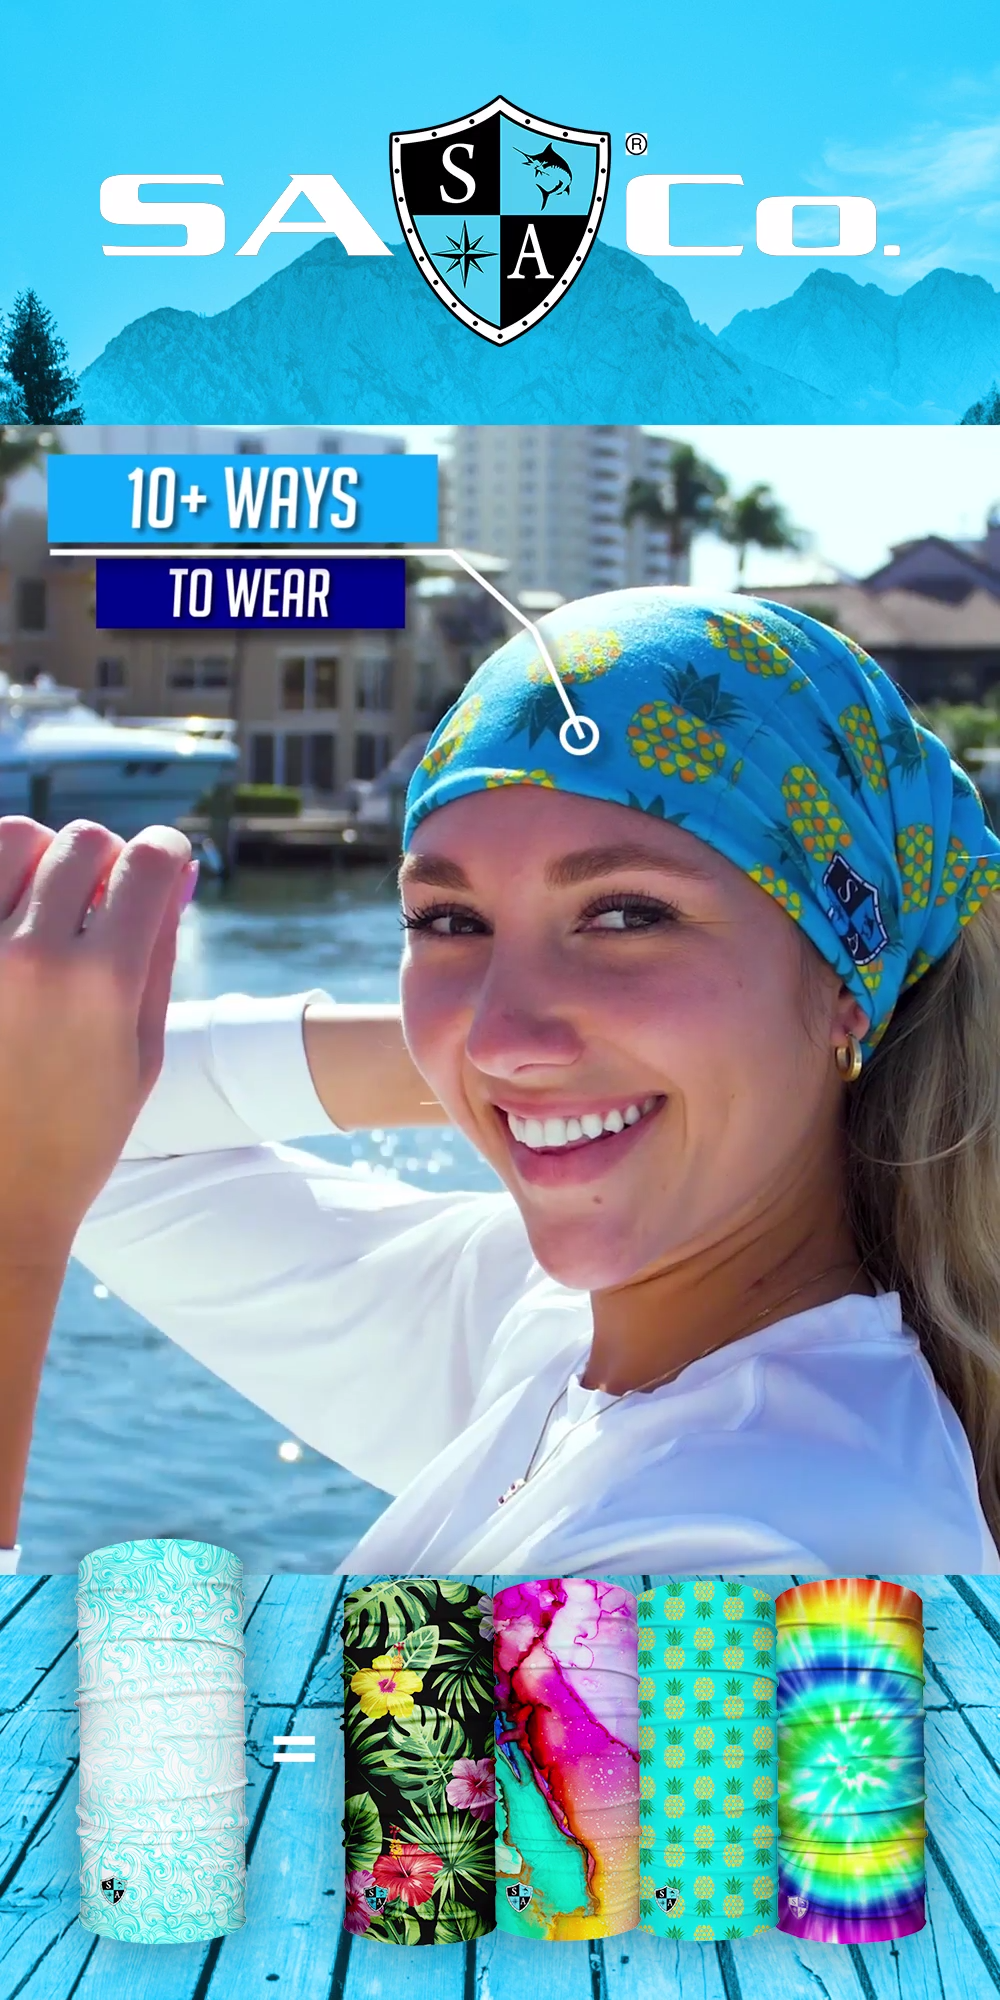 200+ Designs and 10+ Ways to Wear. Protect Your Hair and Face from Sun, Cold, Dust, & Allergens. Made of SPF 40 Microfiber. All Face Shields come with a Lifetime Warranty! Join the SA Team Today!